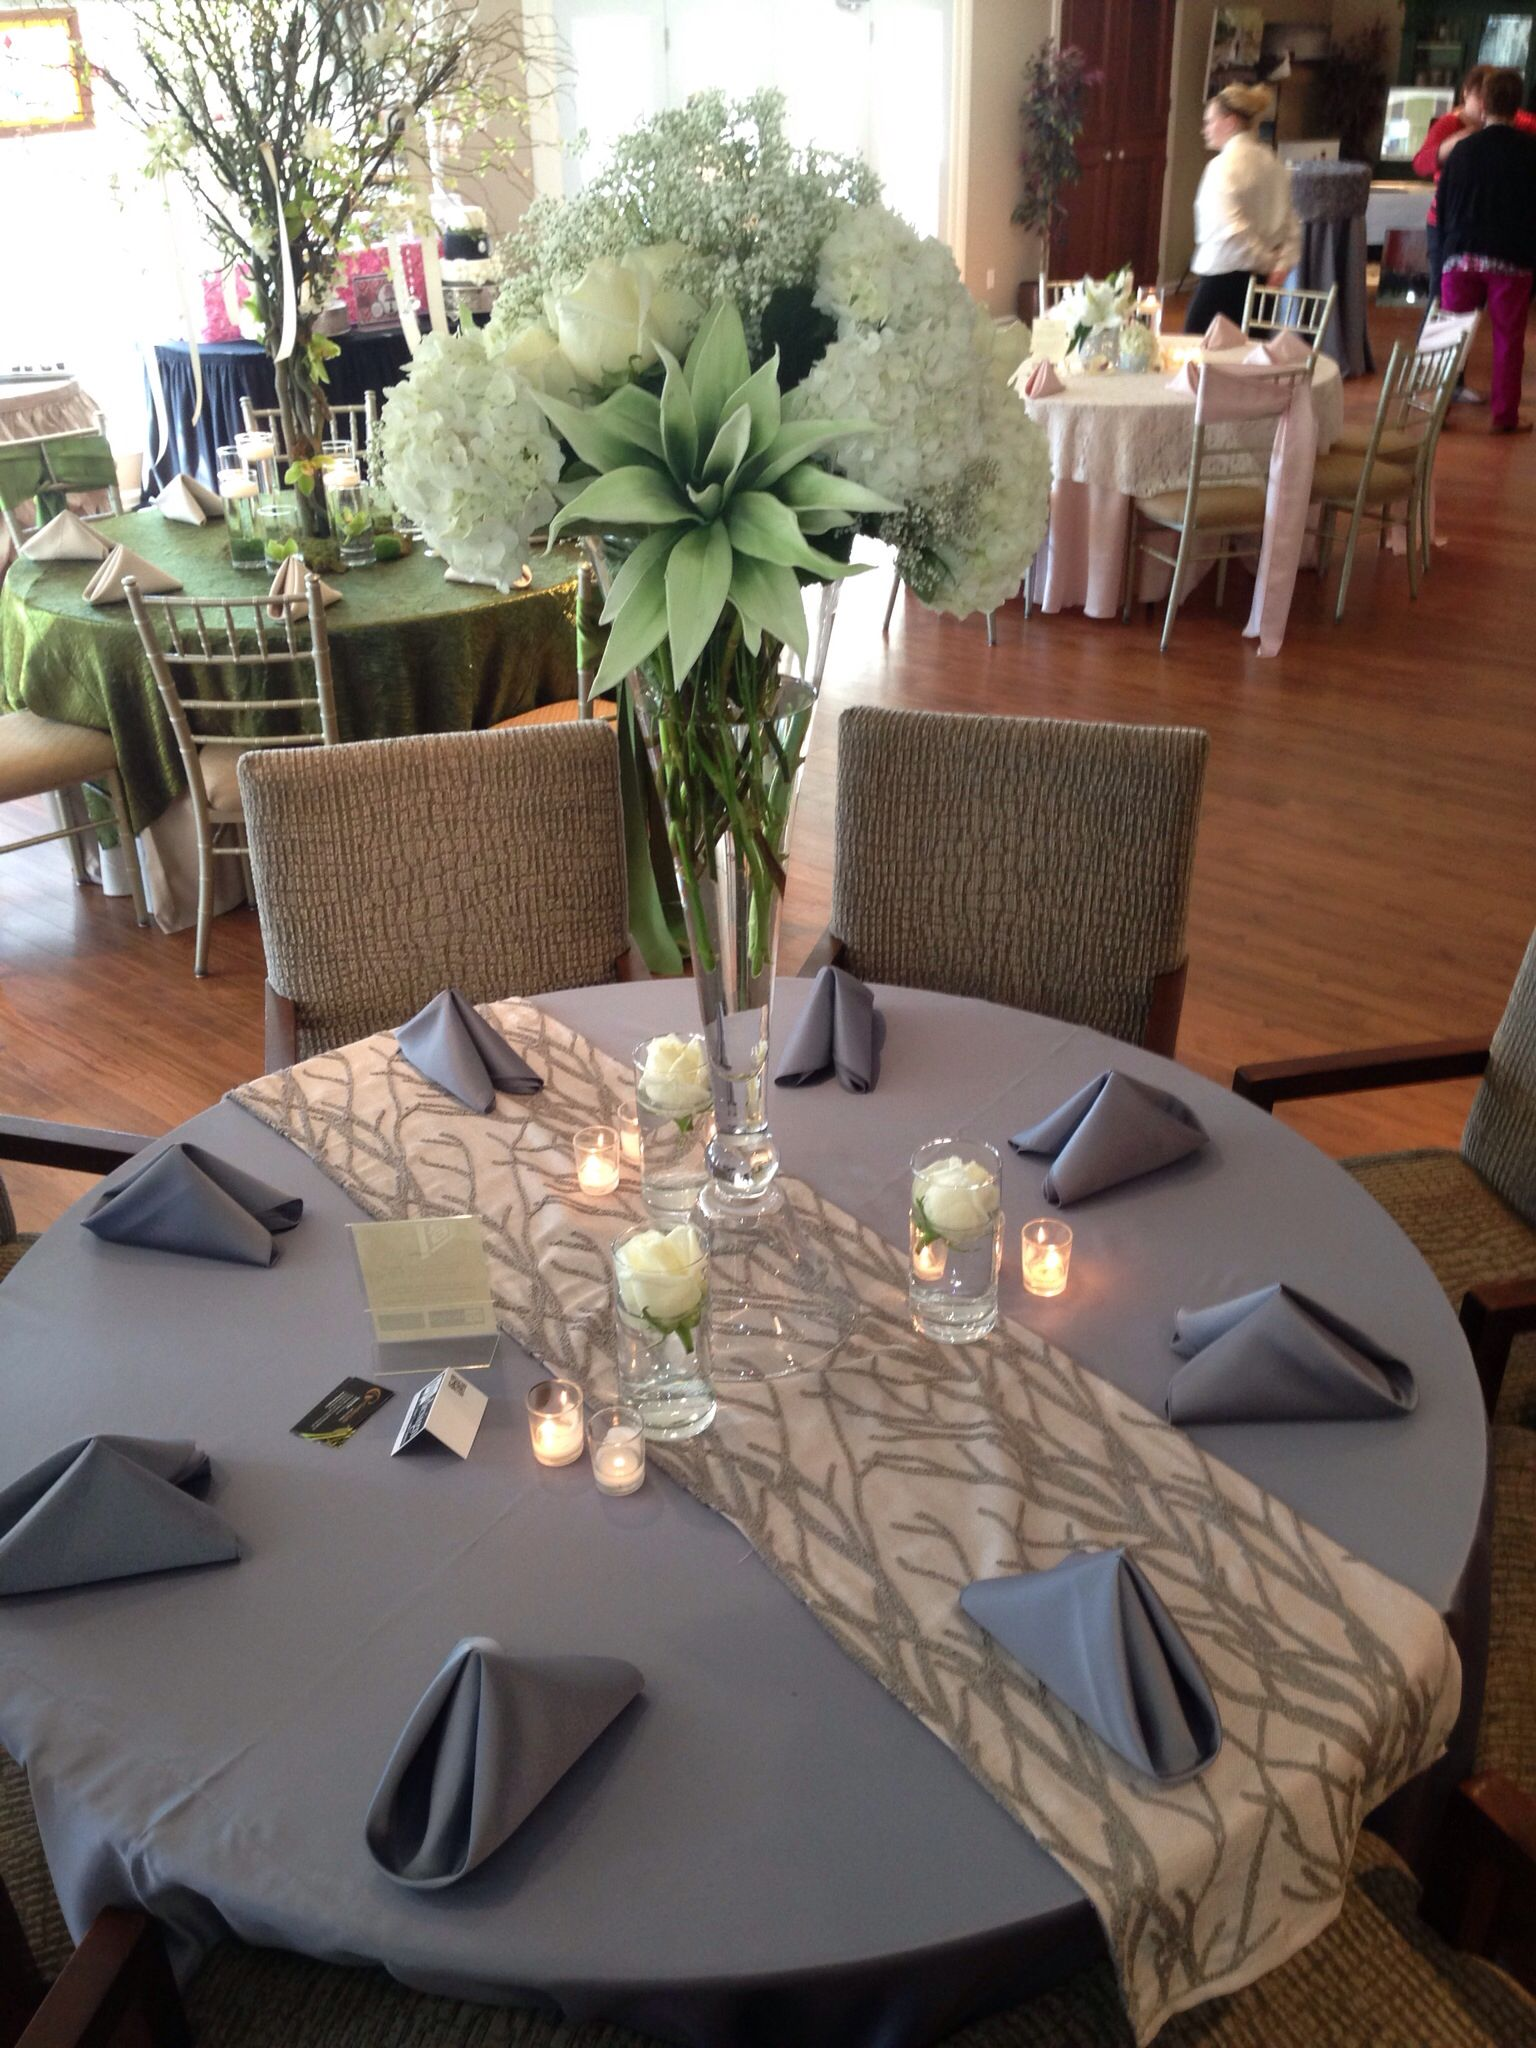 Sa wedding decor images  Charcoal satin napkins and table cloth allow you to incorporate any